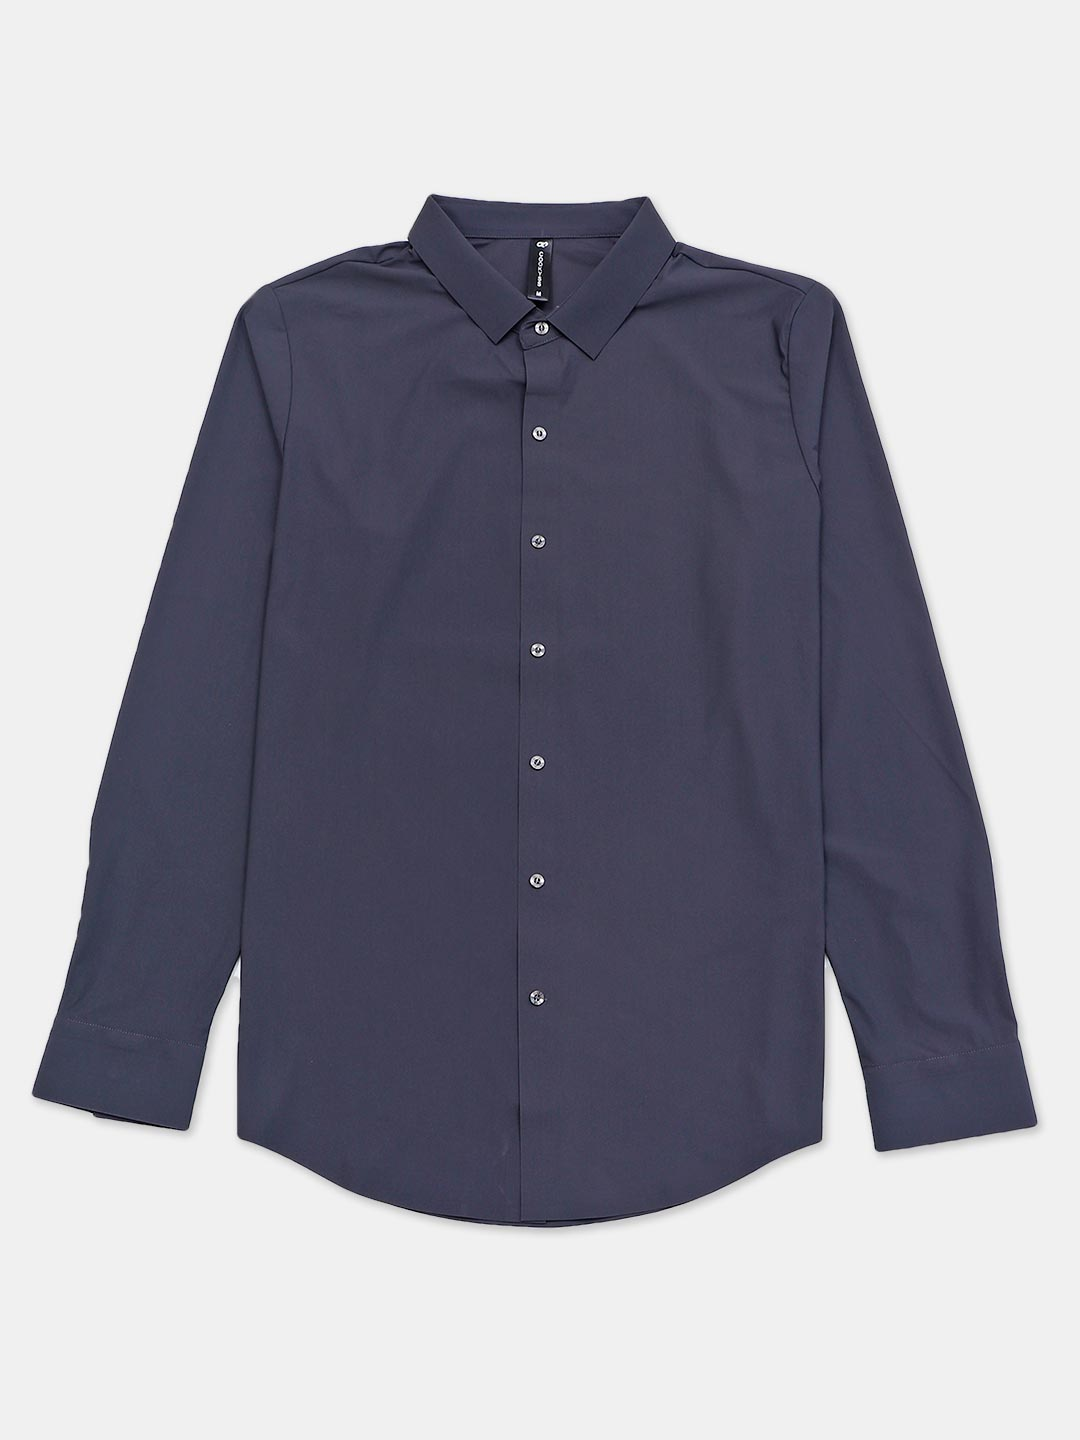 Cookyss full sleeves dark grey solid casual shirt?imgeng=w_400